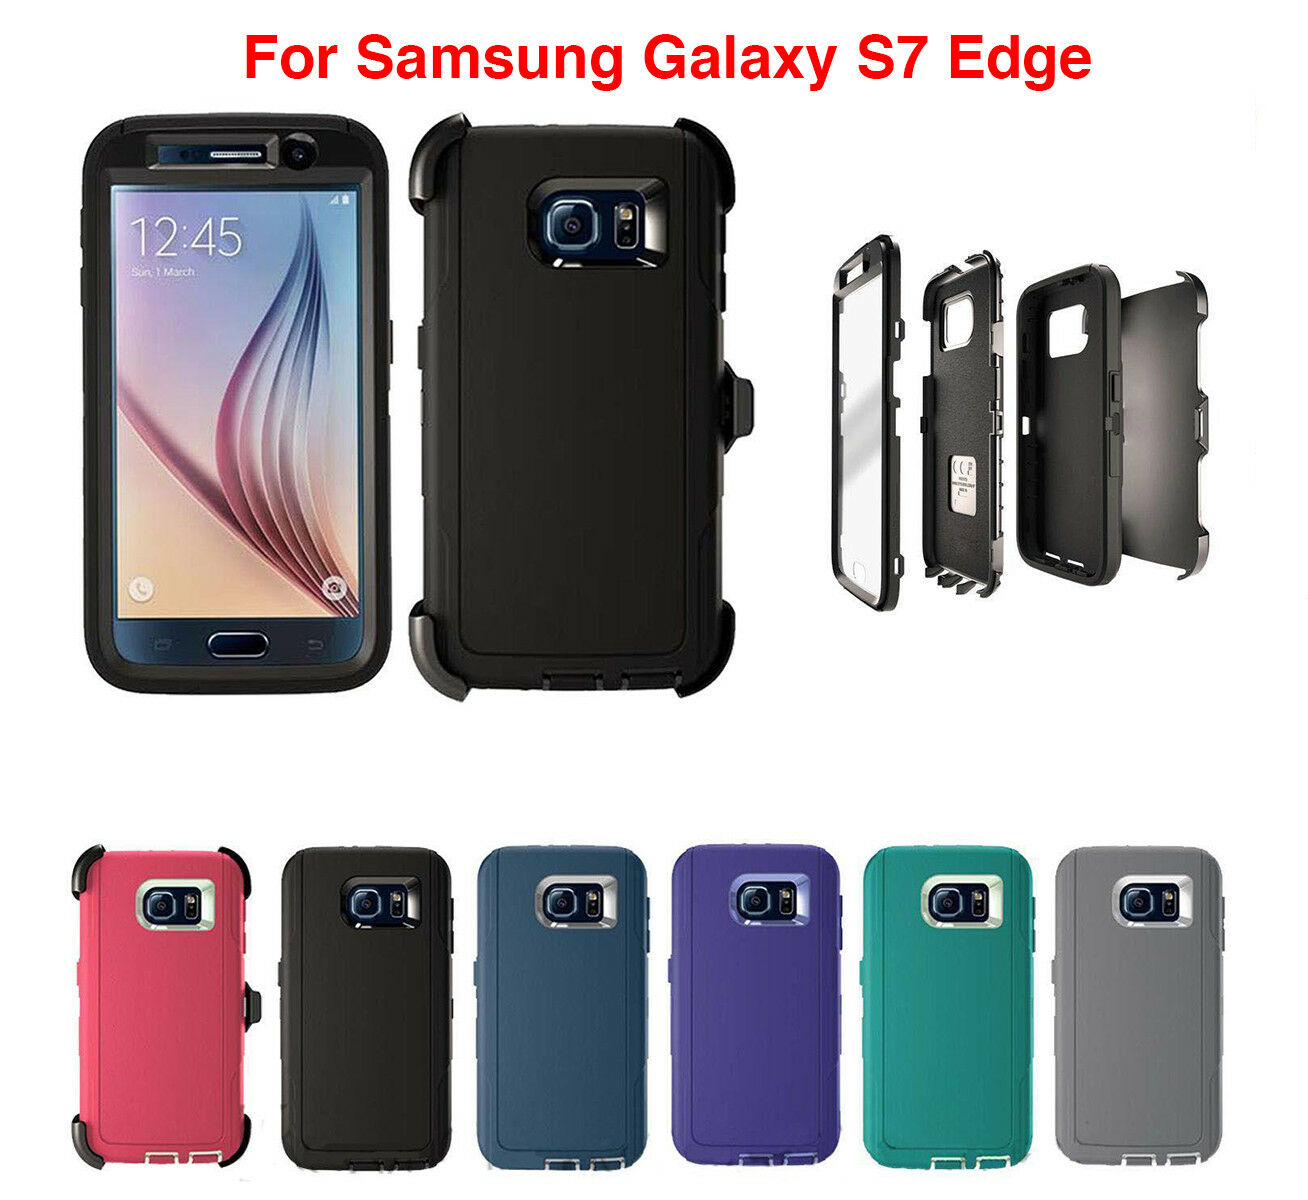 Fits Samsung Galaxy S7 Edge Case Cover with Belt Clip Fits O